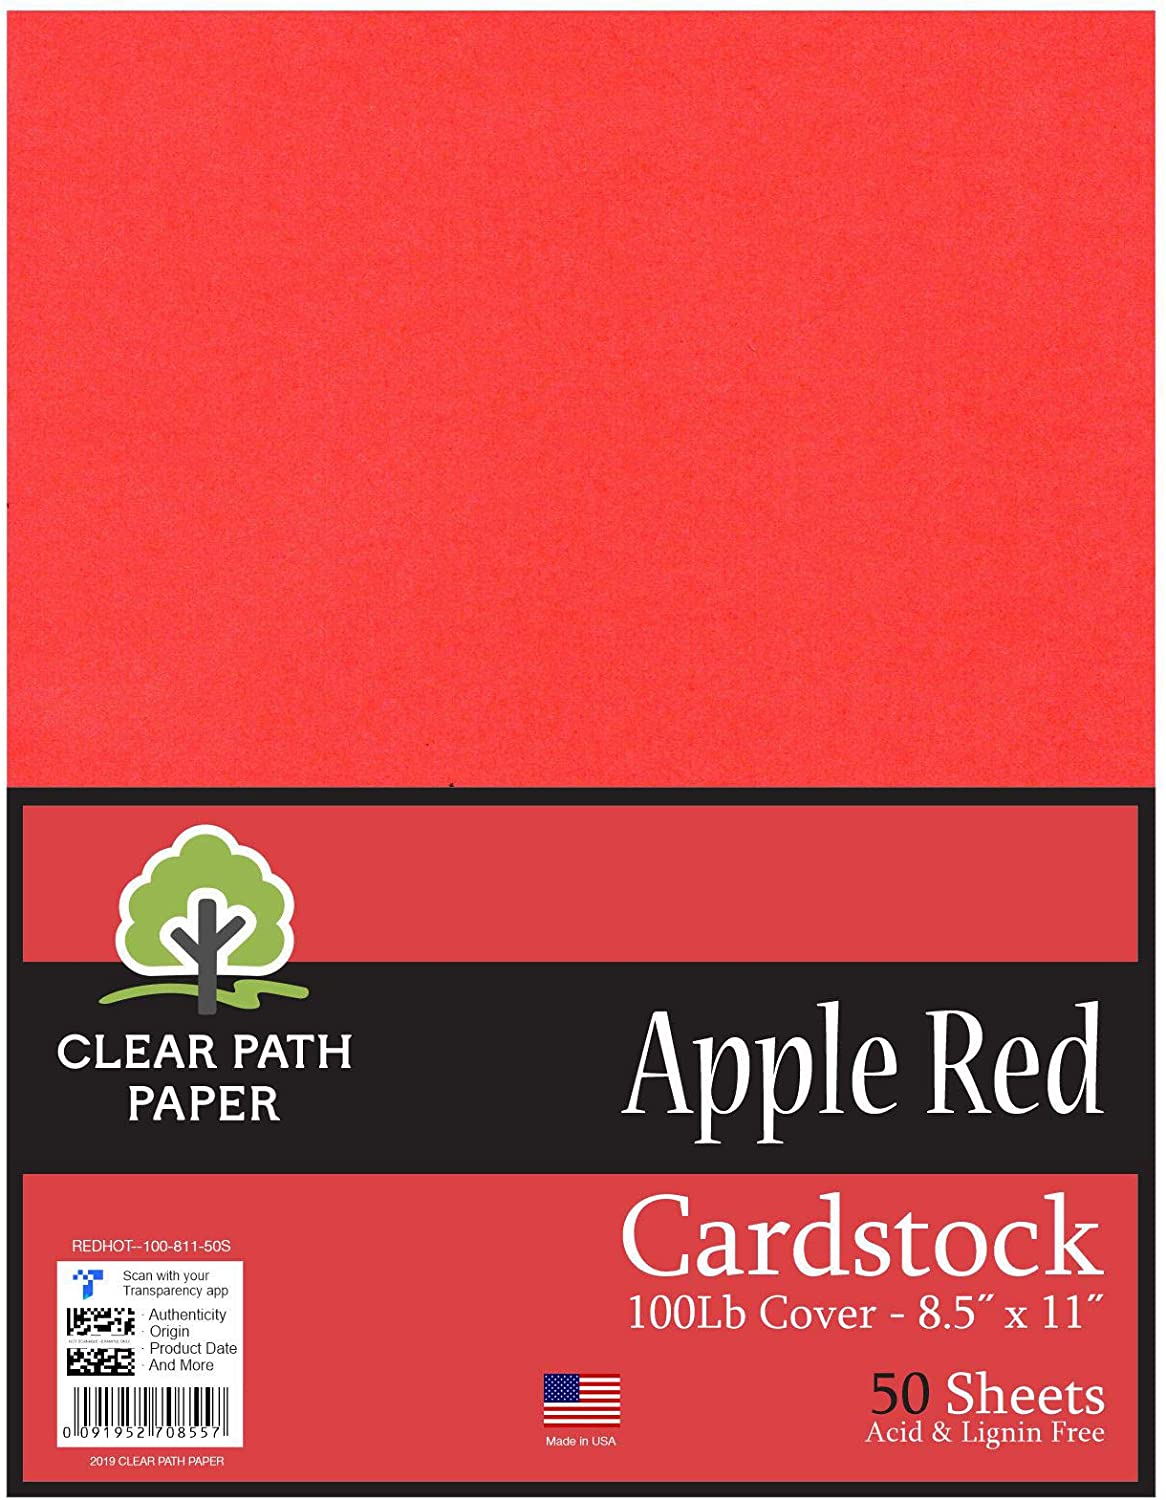 Apple Red Formerly All stores are sold Hot Cardstock - Max 46% OFF 8.5 inch 11 x C 100Lb